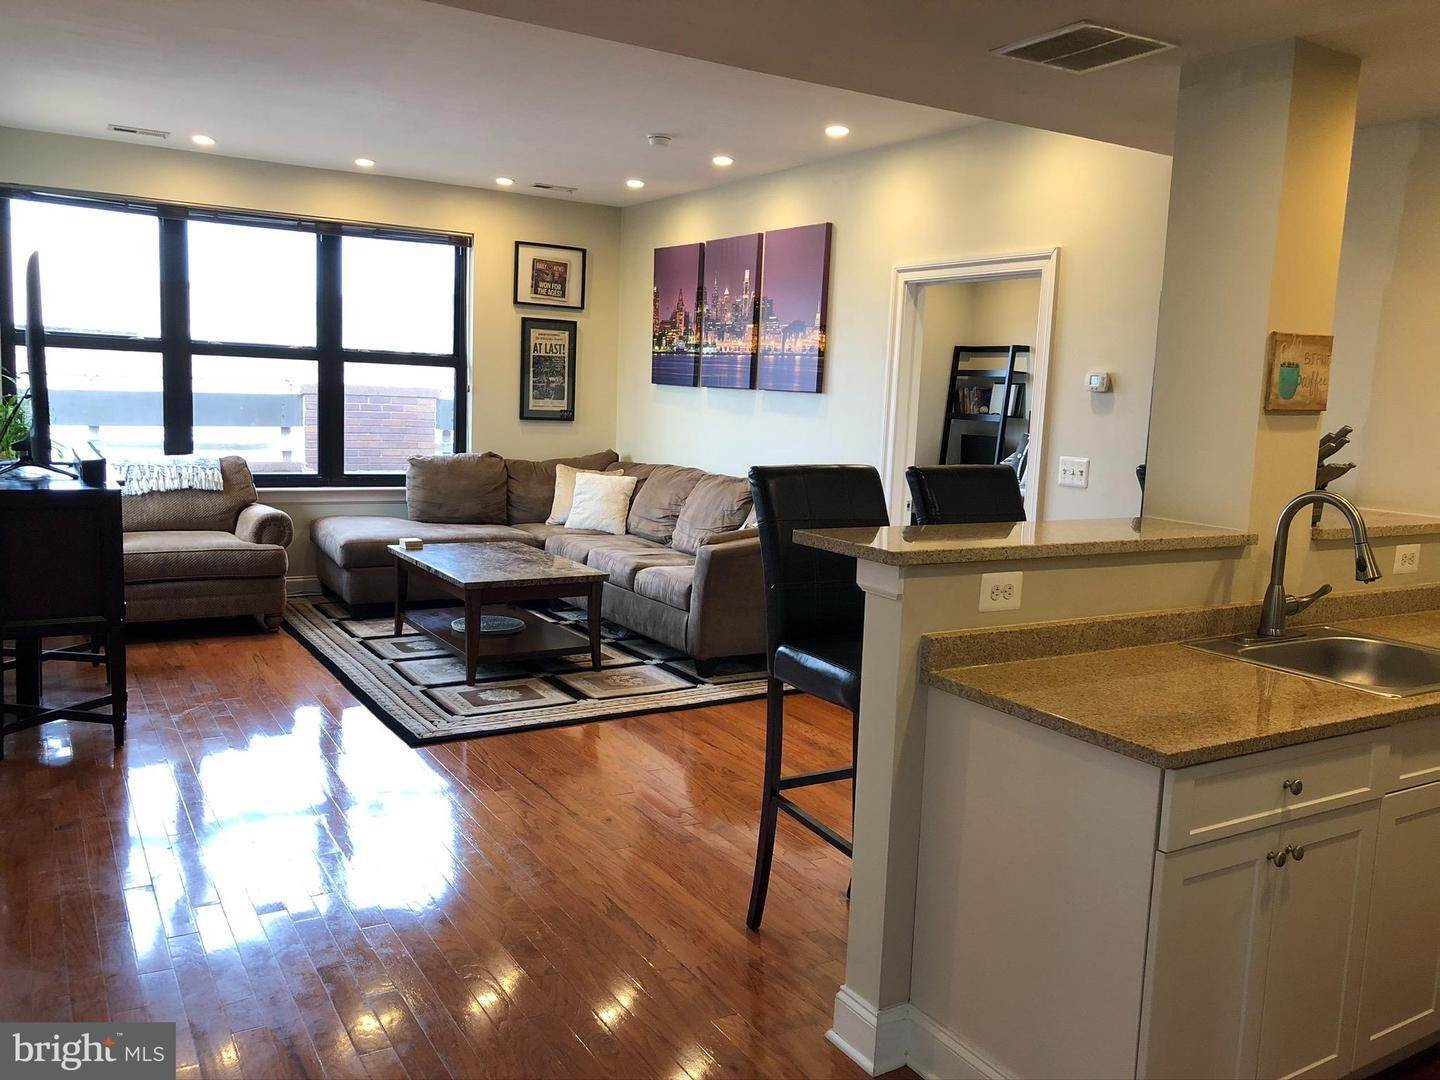 Condominiums for Sale at 125 N 4TH ST #601 Philadelphia, Pennsylvania 19106 United States